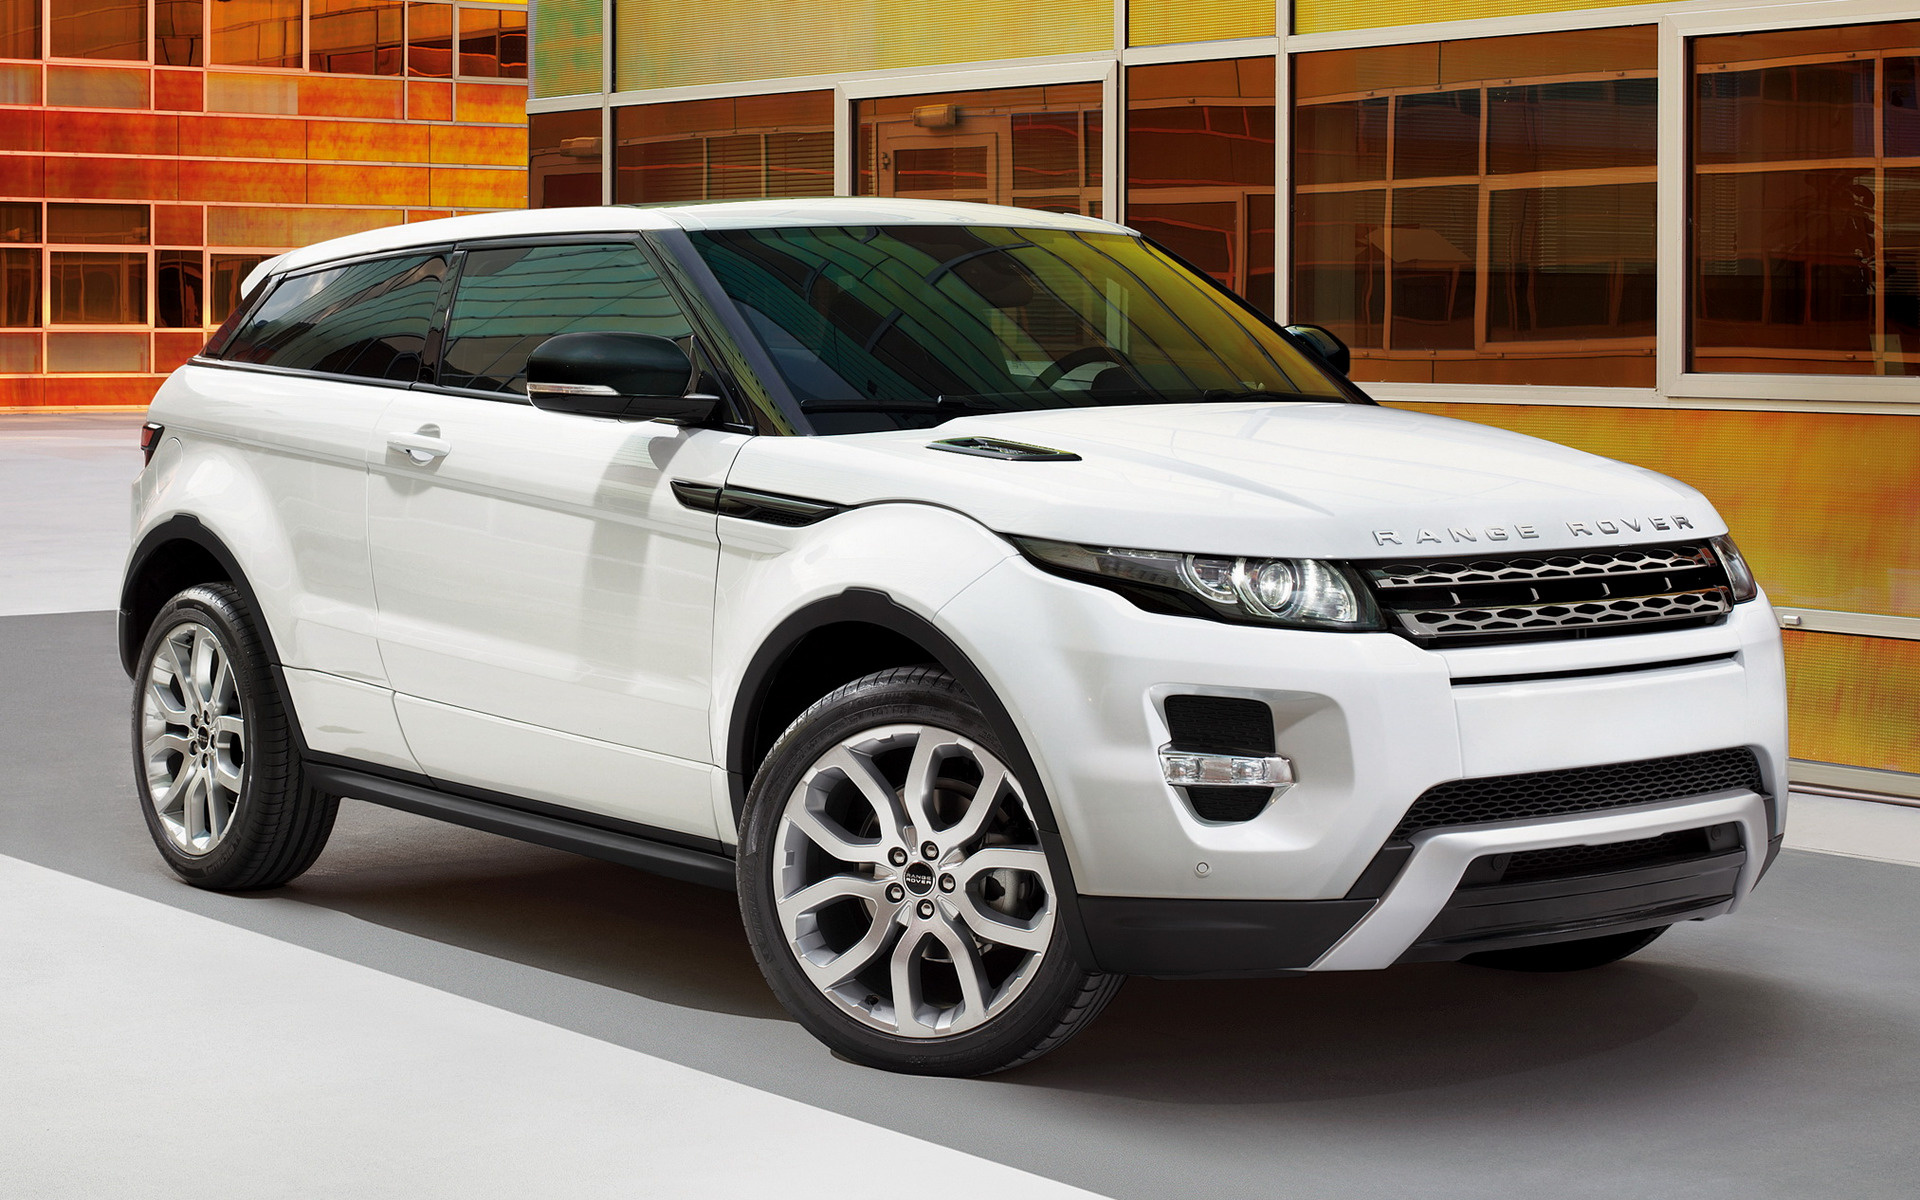 range rover evoque coupe dynamic 2011 wallpapers and hd images car pixel. Black Bedroom Furniture Sets. Home Design Ideas